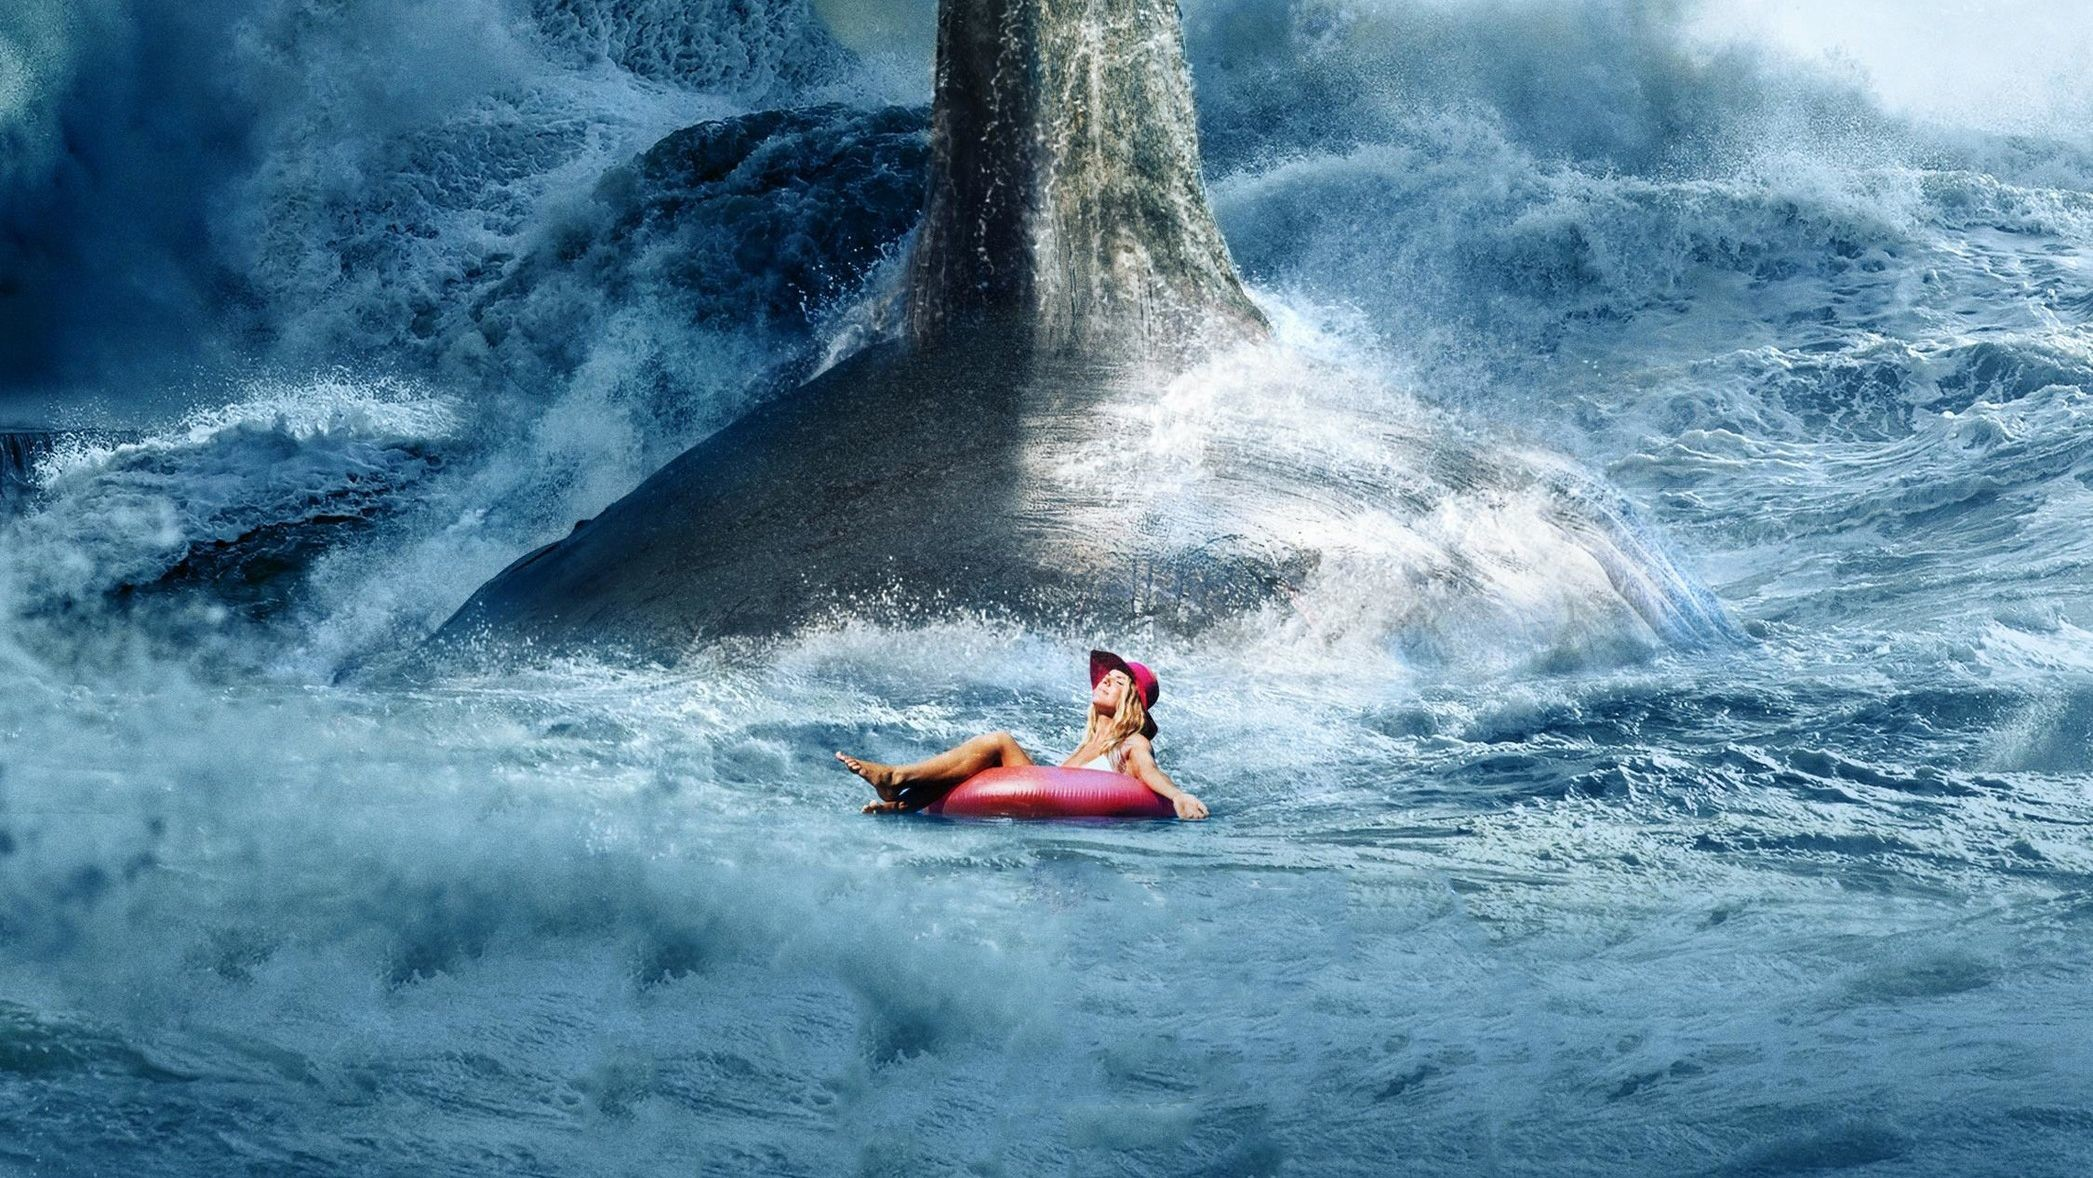 2093x1178 The Meg Movie 2018, HD Movies, 4k Wallpapers, Images, Backgrounds .